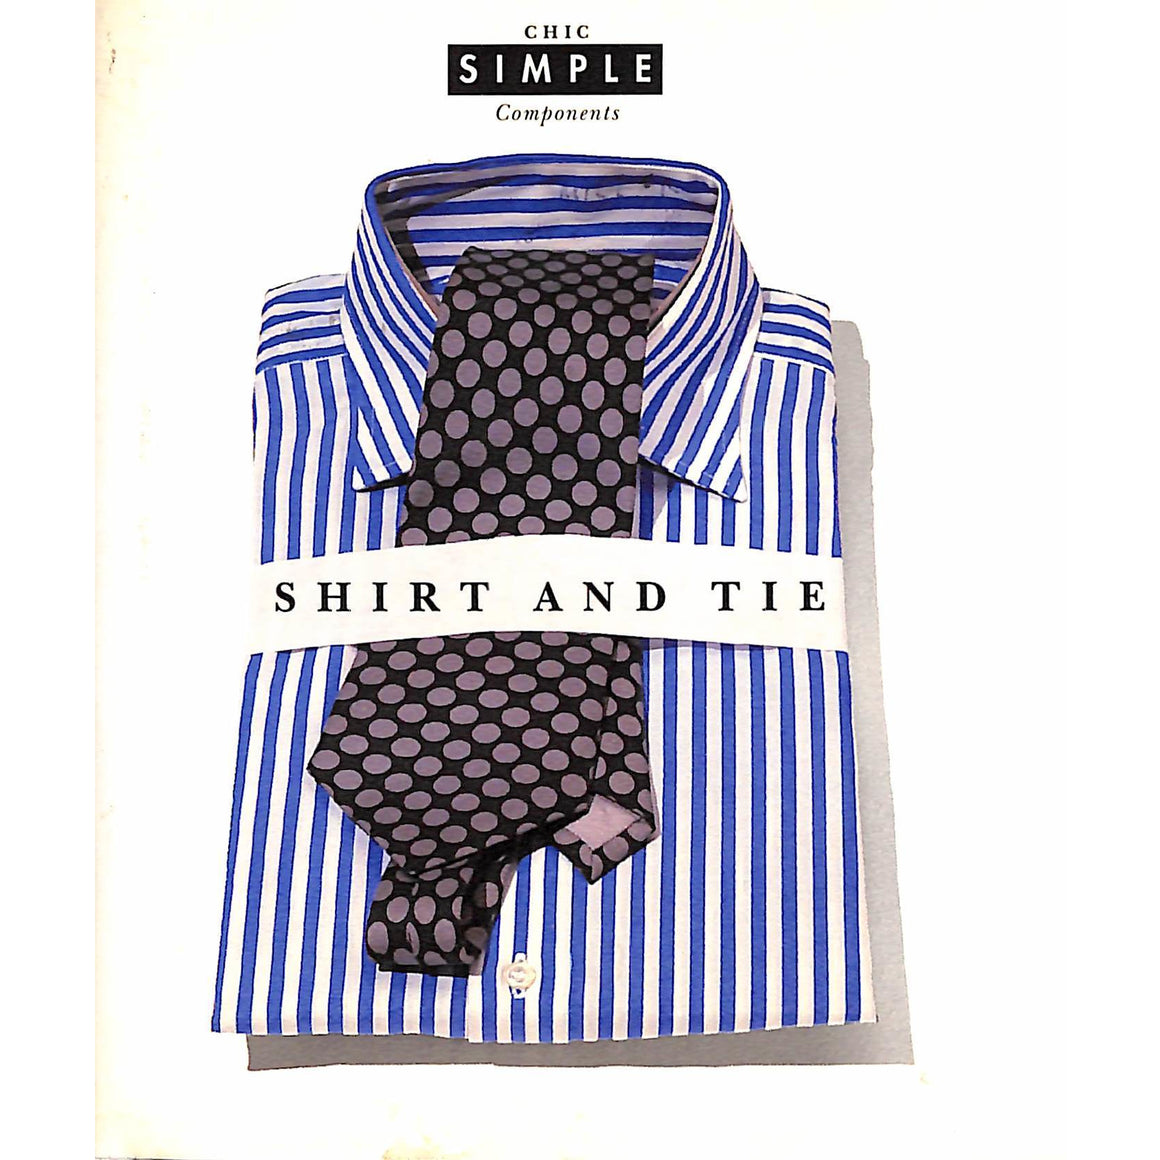 Chic Simple Components; Shirt and Tie